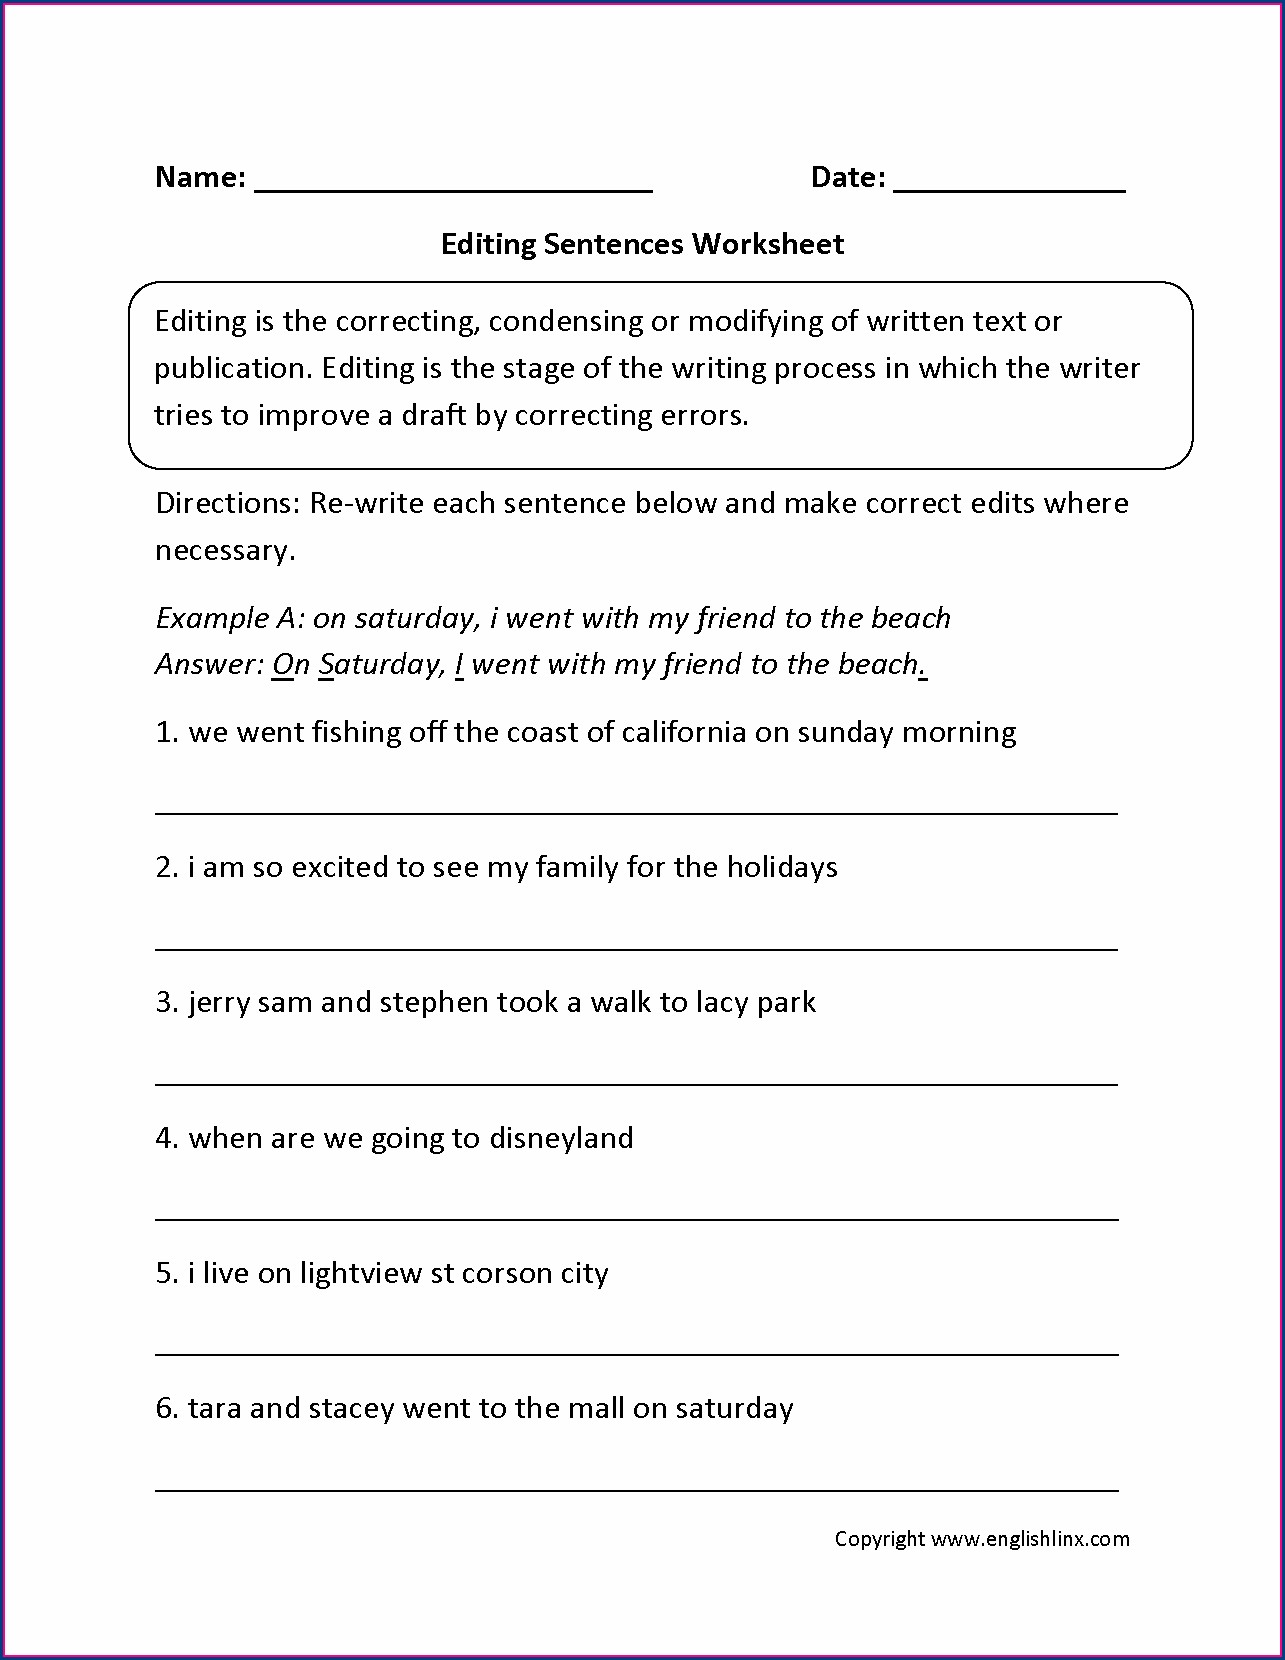 Worksheet And Editing Printable